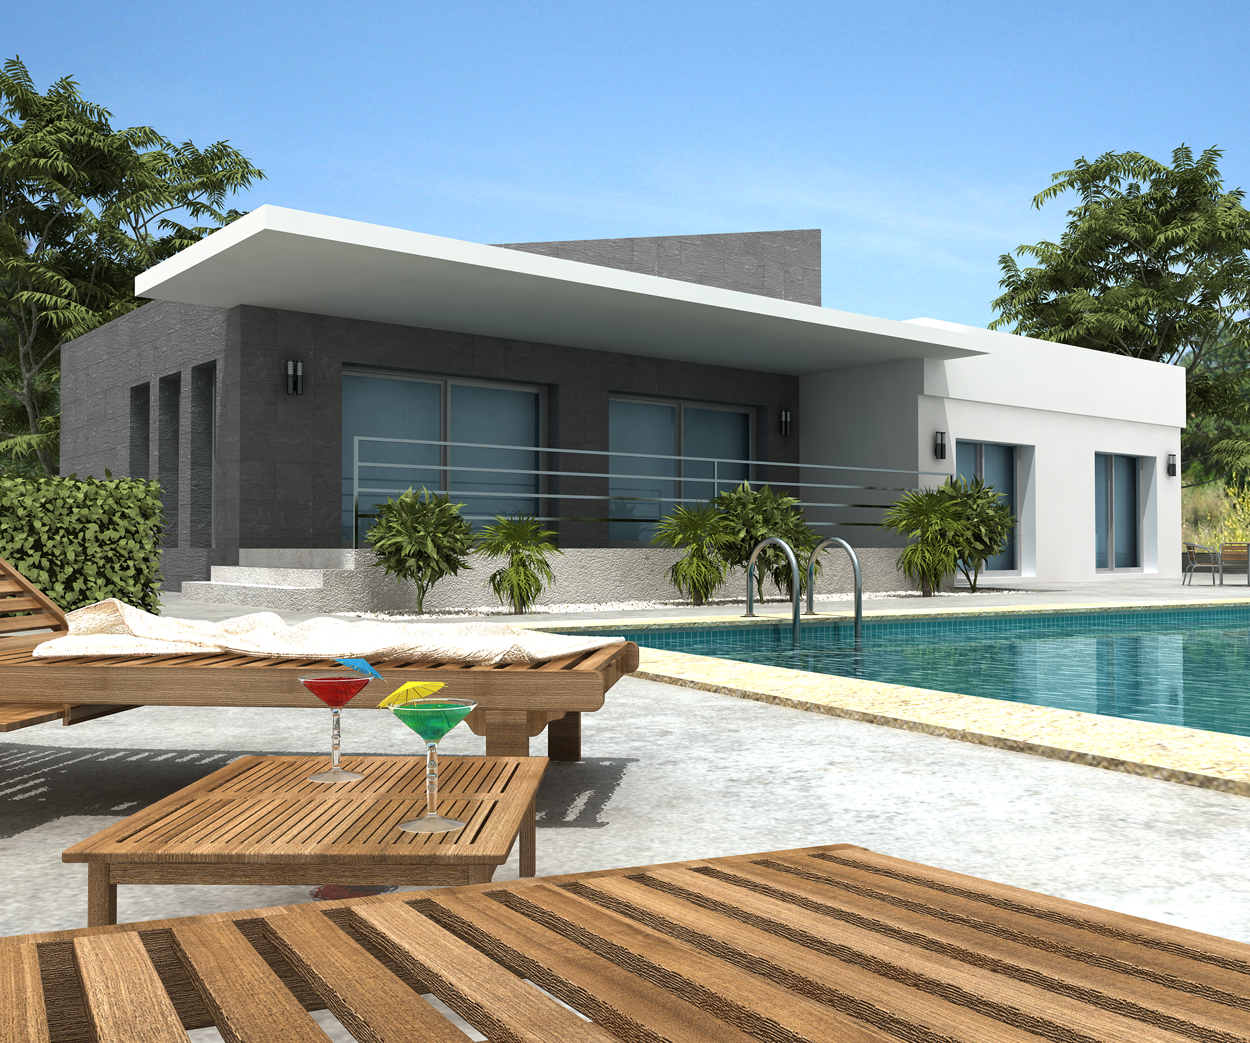 Home Designs October 2012: New Home Designs Latest.: Modern Villa Designs